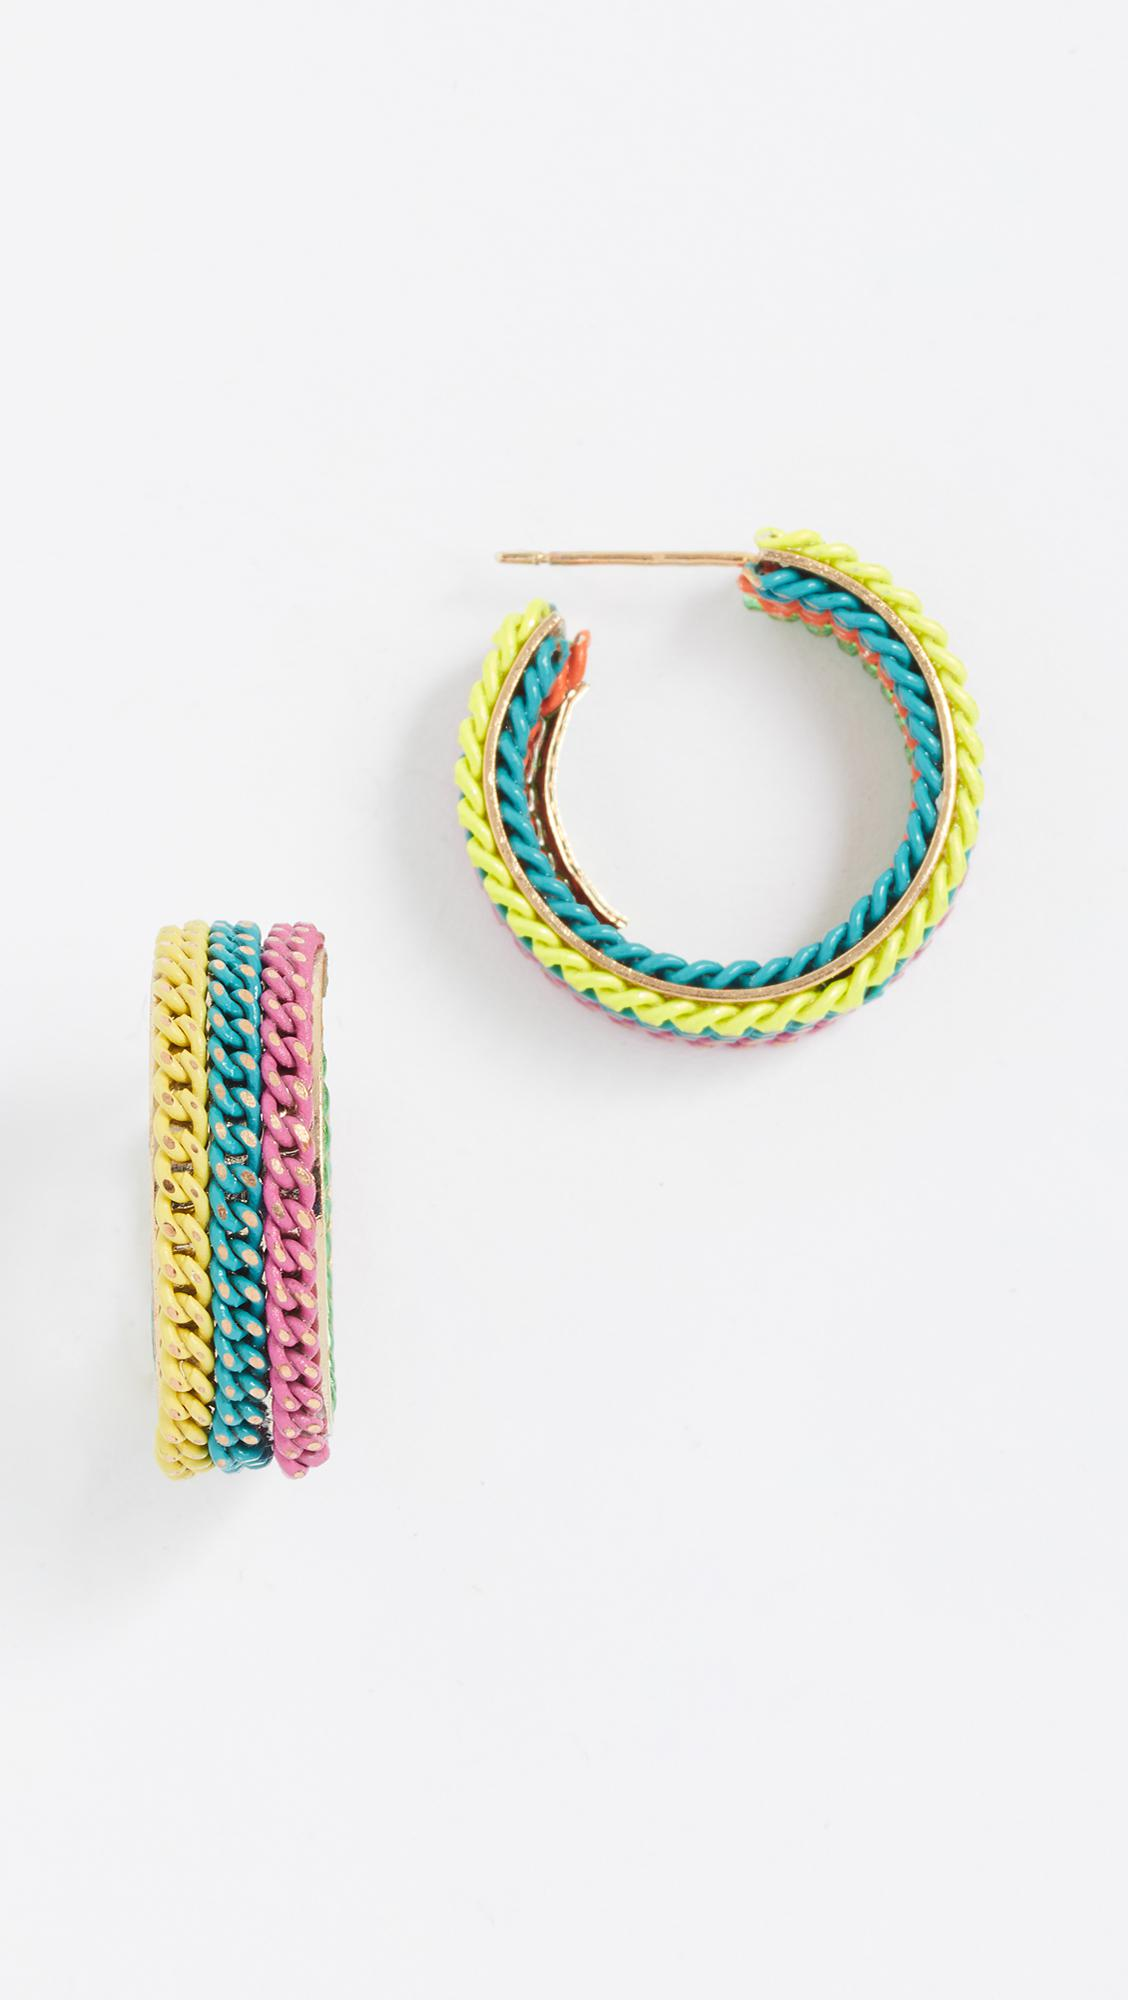 Rosantica Millefili Neon Fringe Hoop Earrings jBrdFTd